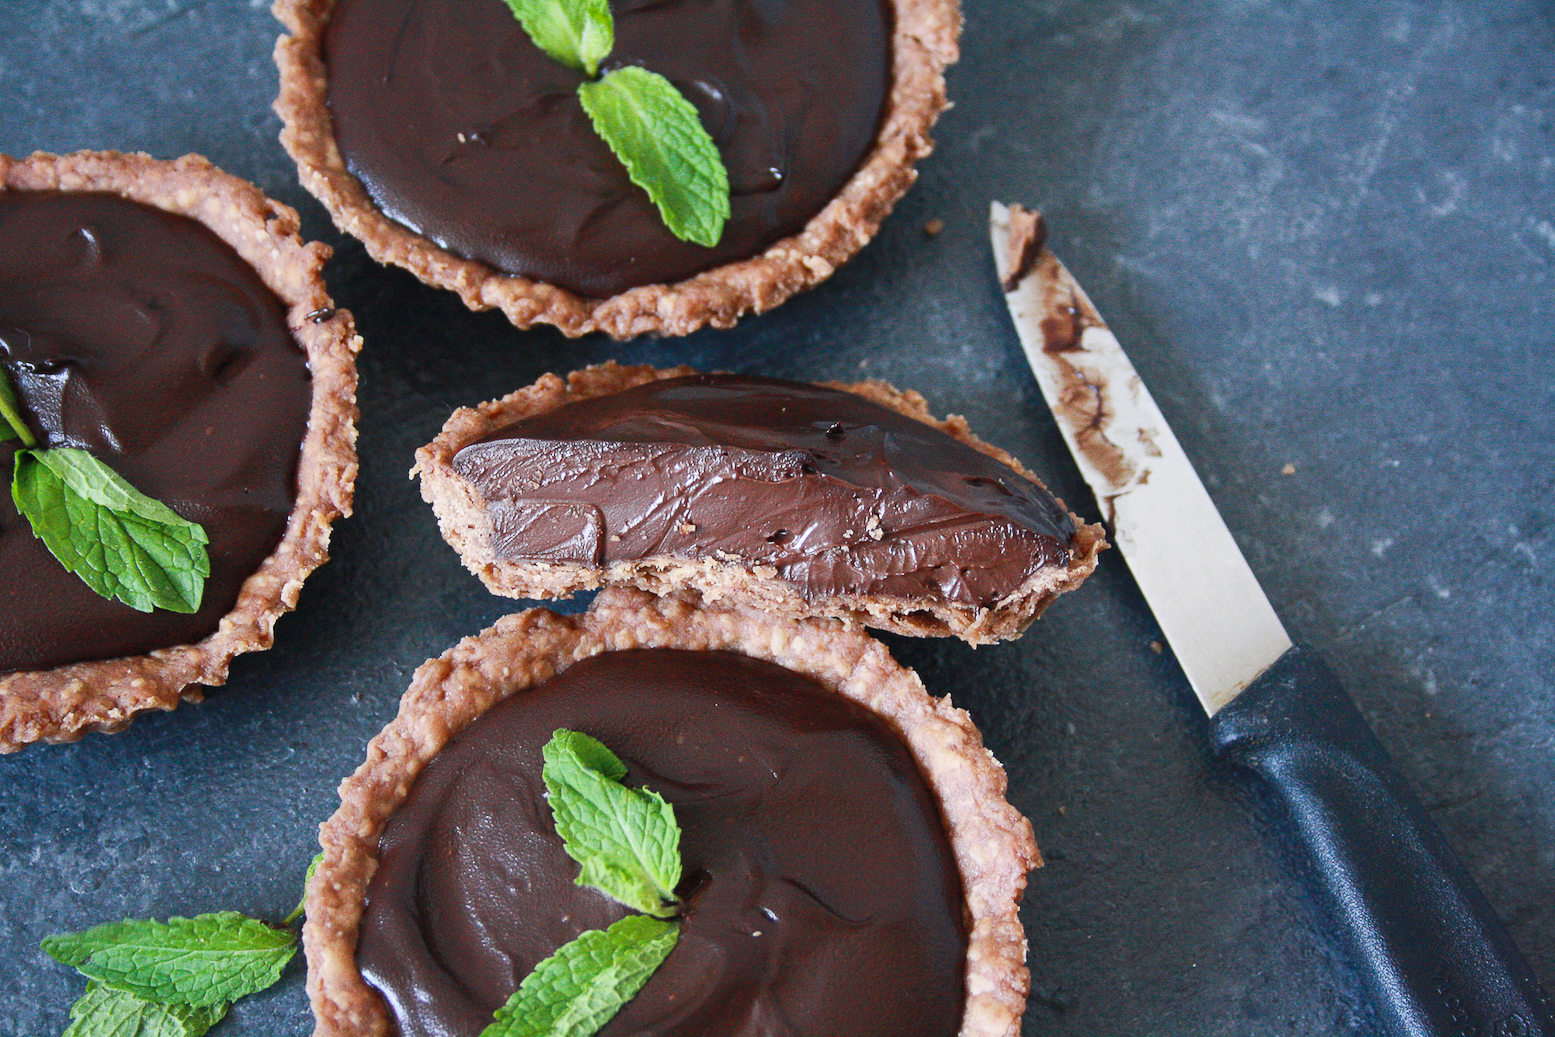 Buttery chocolate tart shells filled with a rich, fresh mint infused, chocolate ganache!